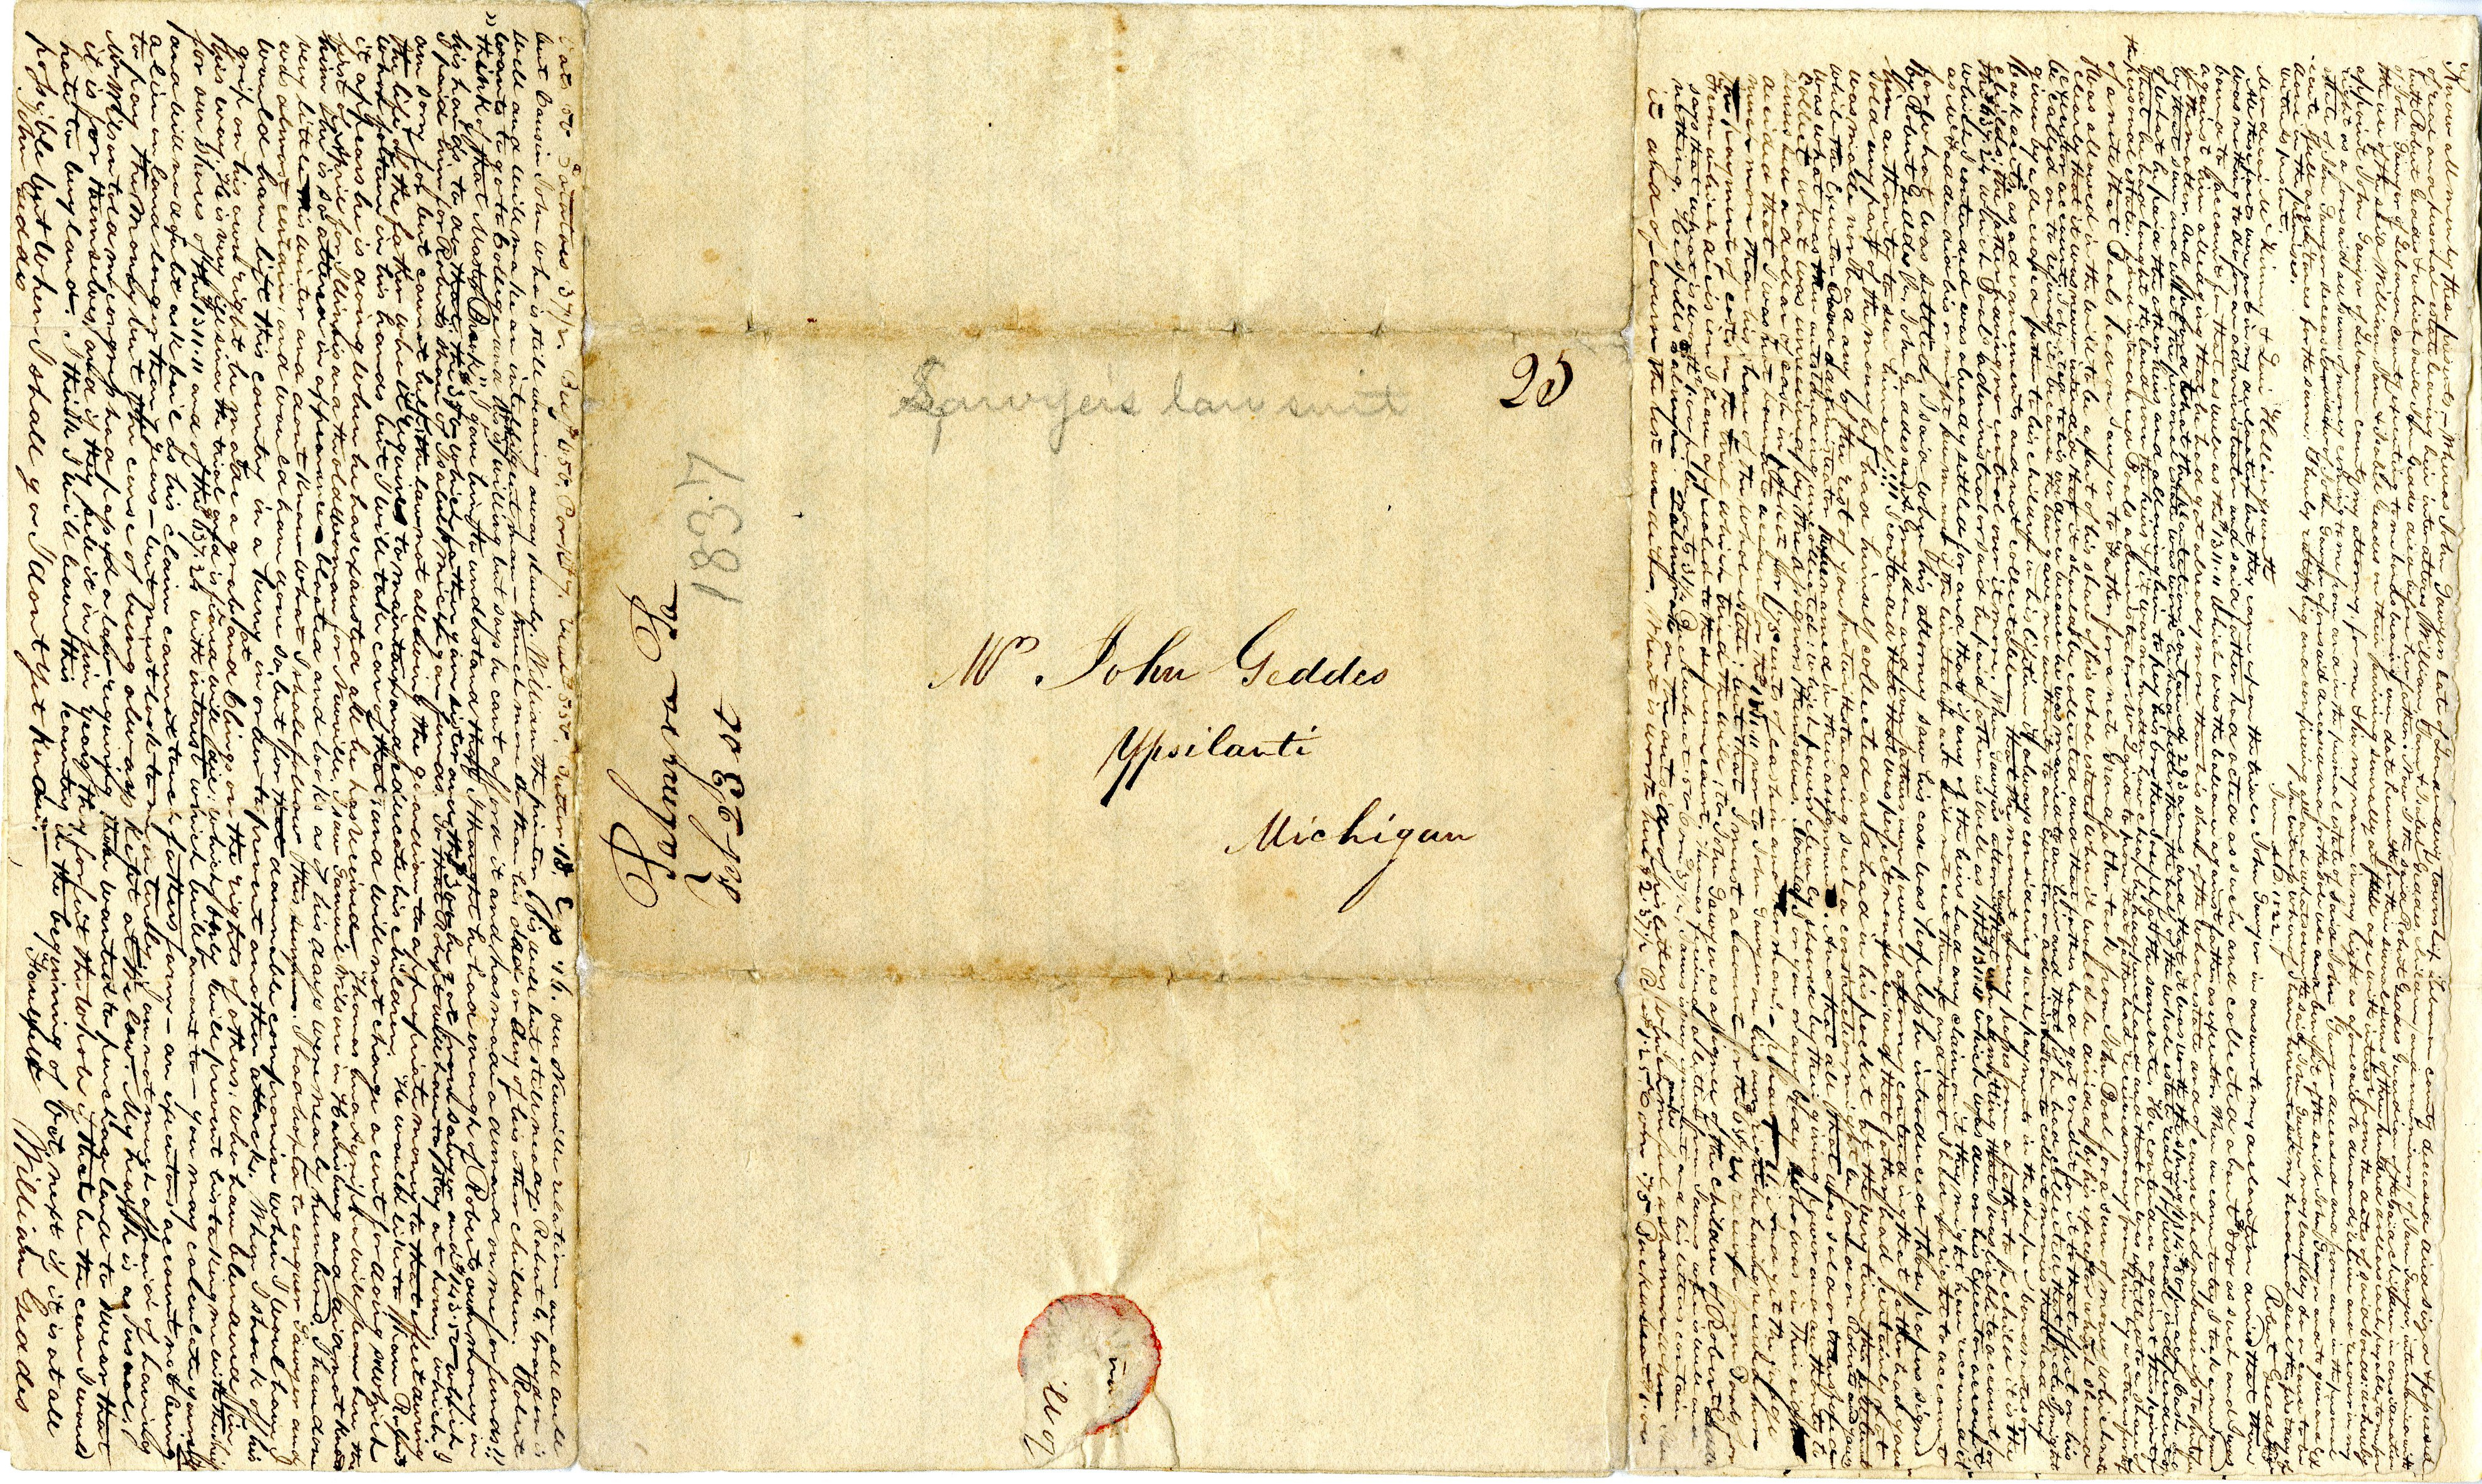 Letter From William Geddes to John Geddes, February 22, 1837 image